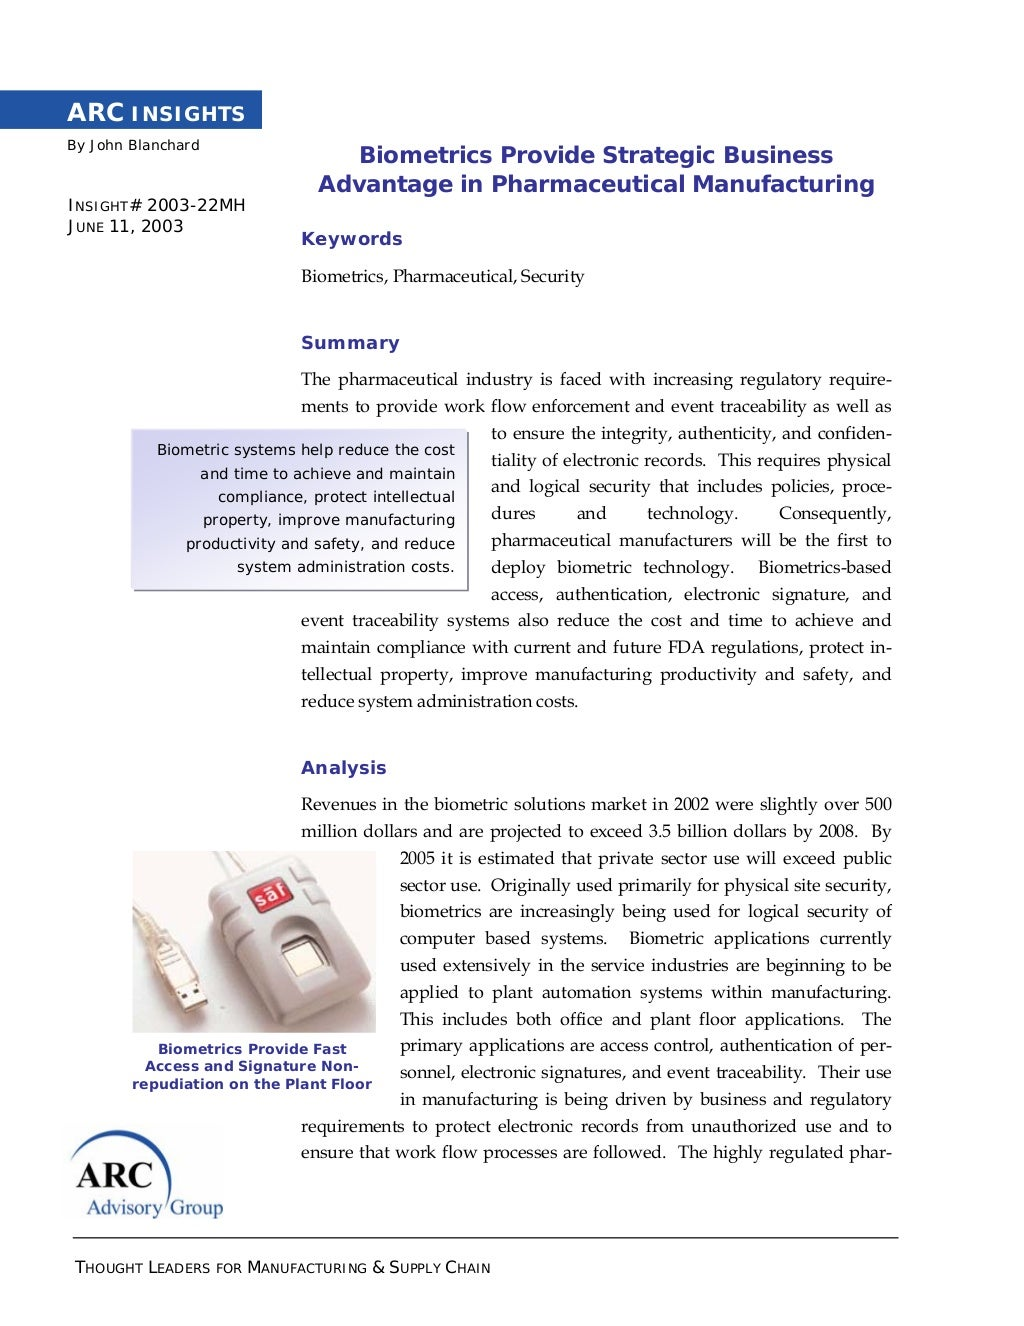 Biometrics Provide Strategic Business Advantage in Pharmaceutical Manufacturing